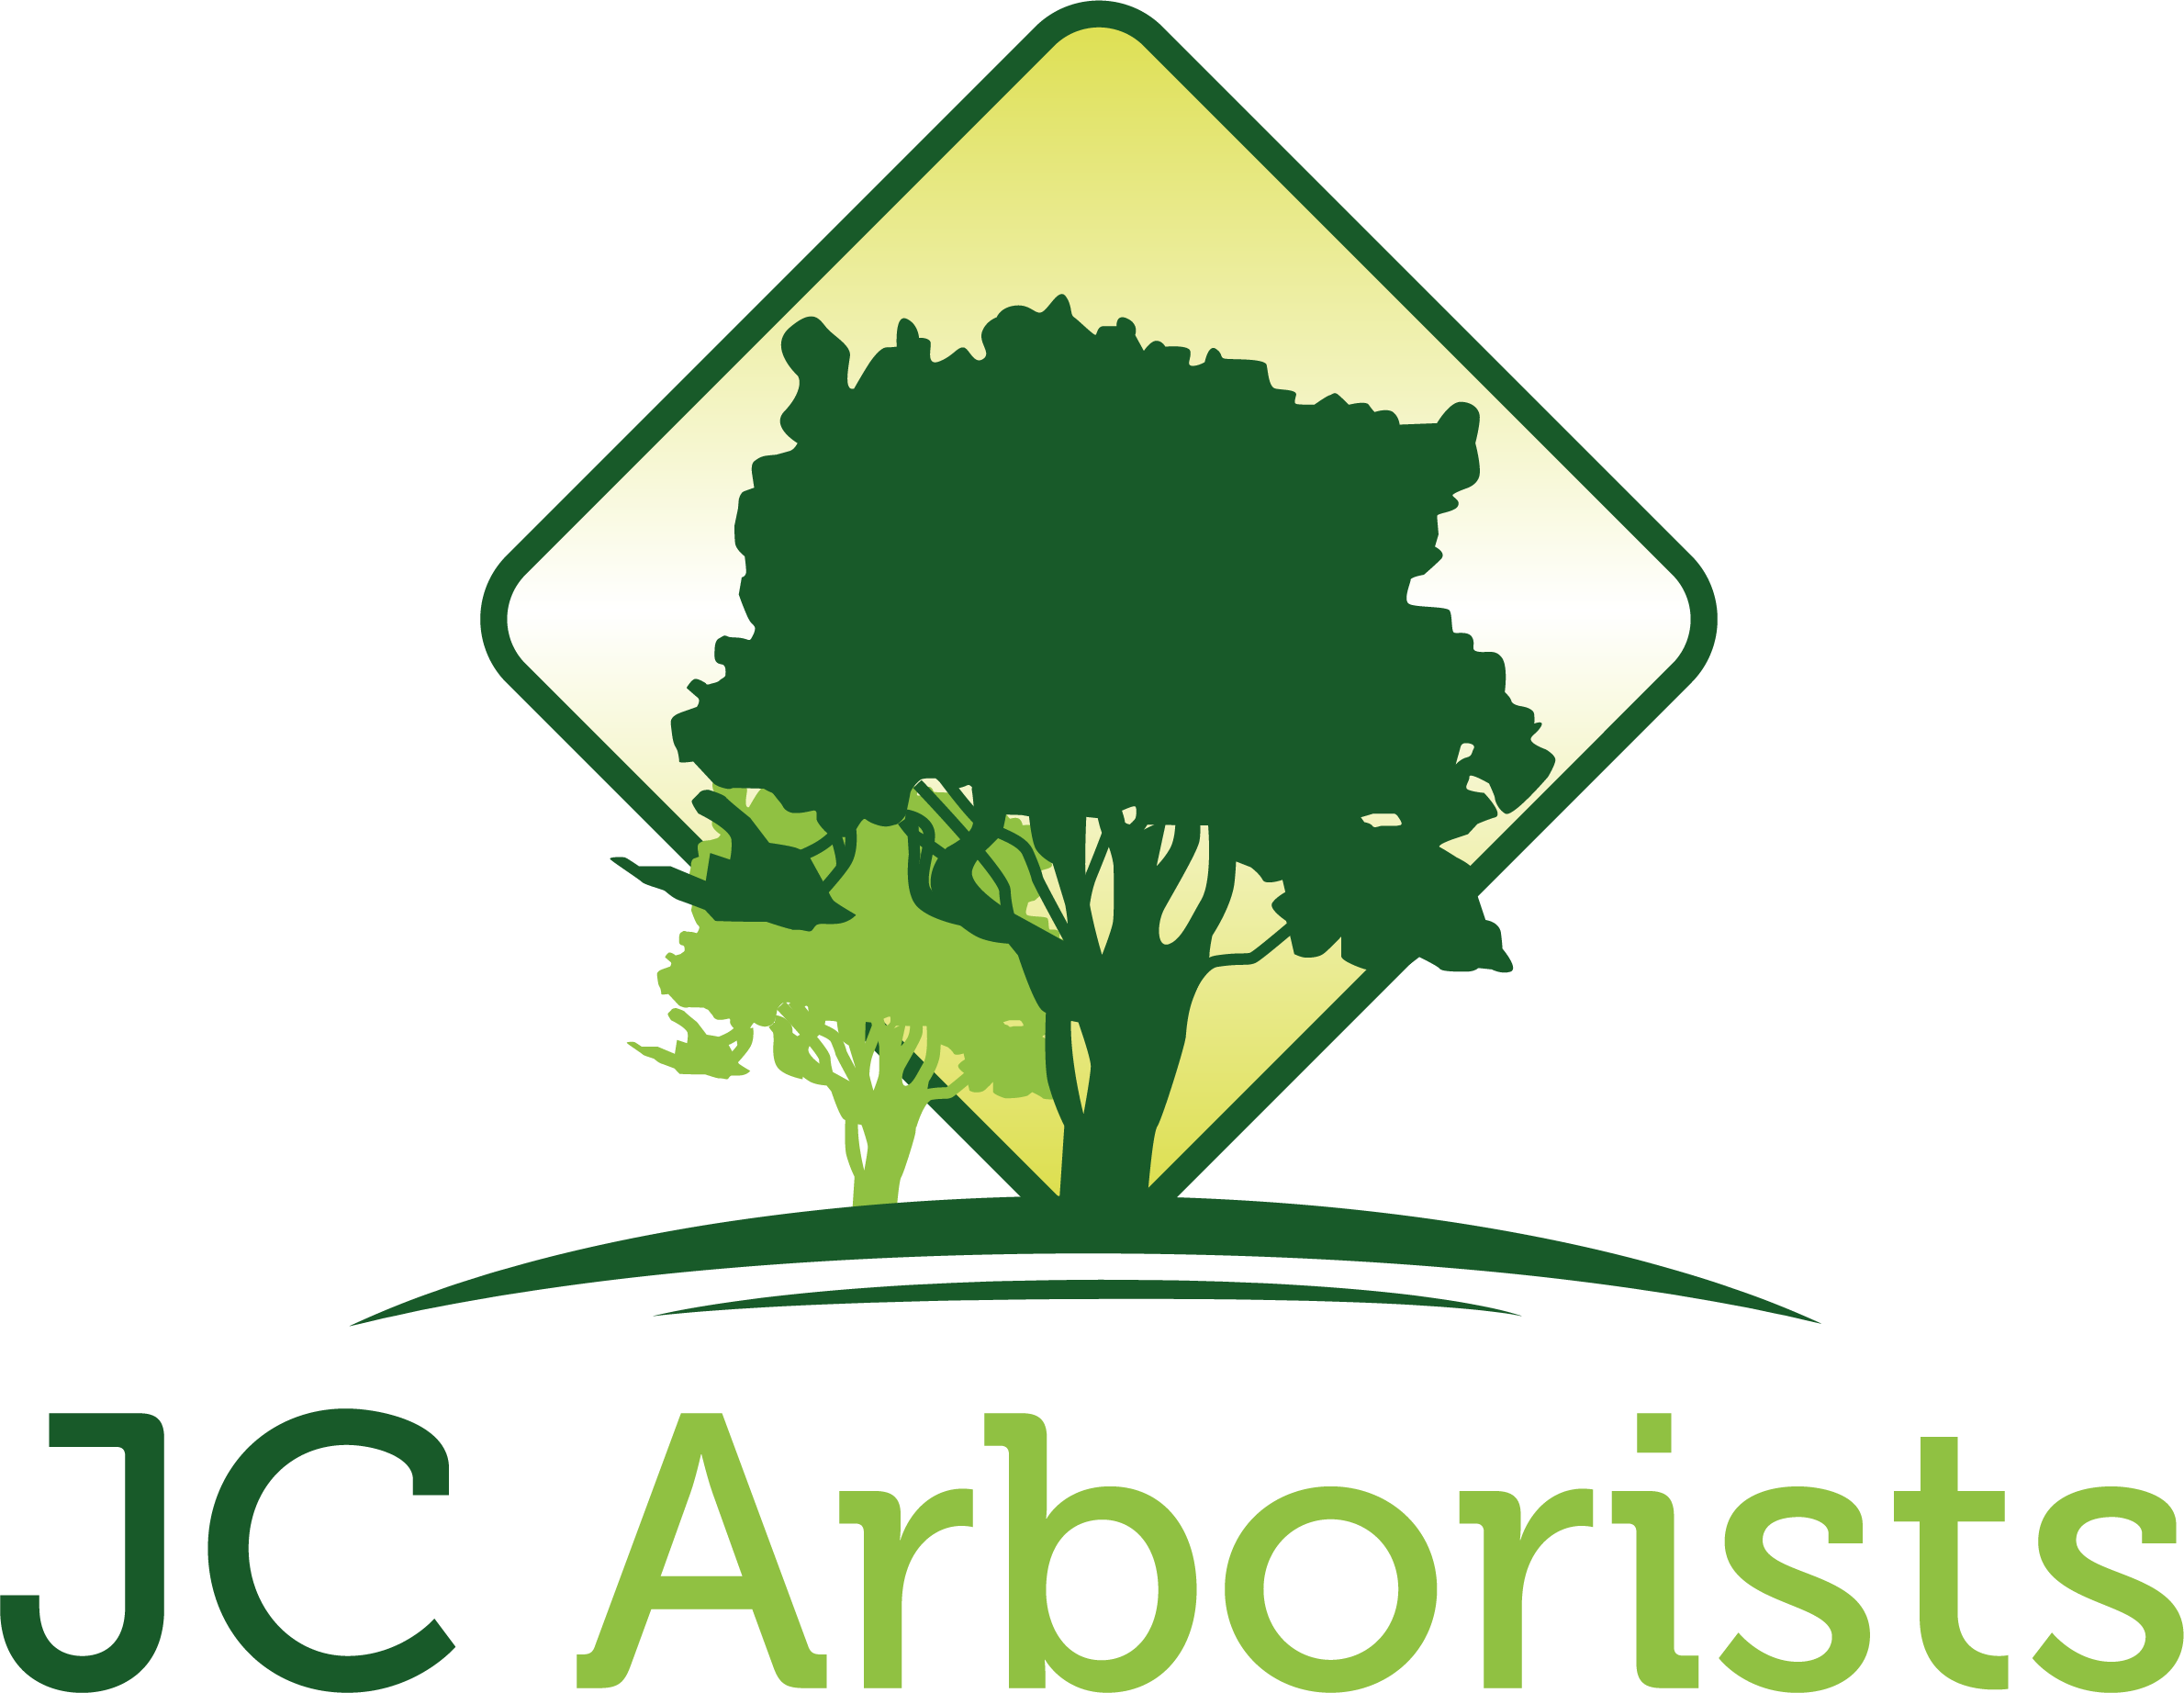 JC Arborists Harrogate Tree Surgeons & Tree Care Icon